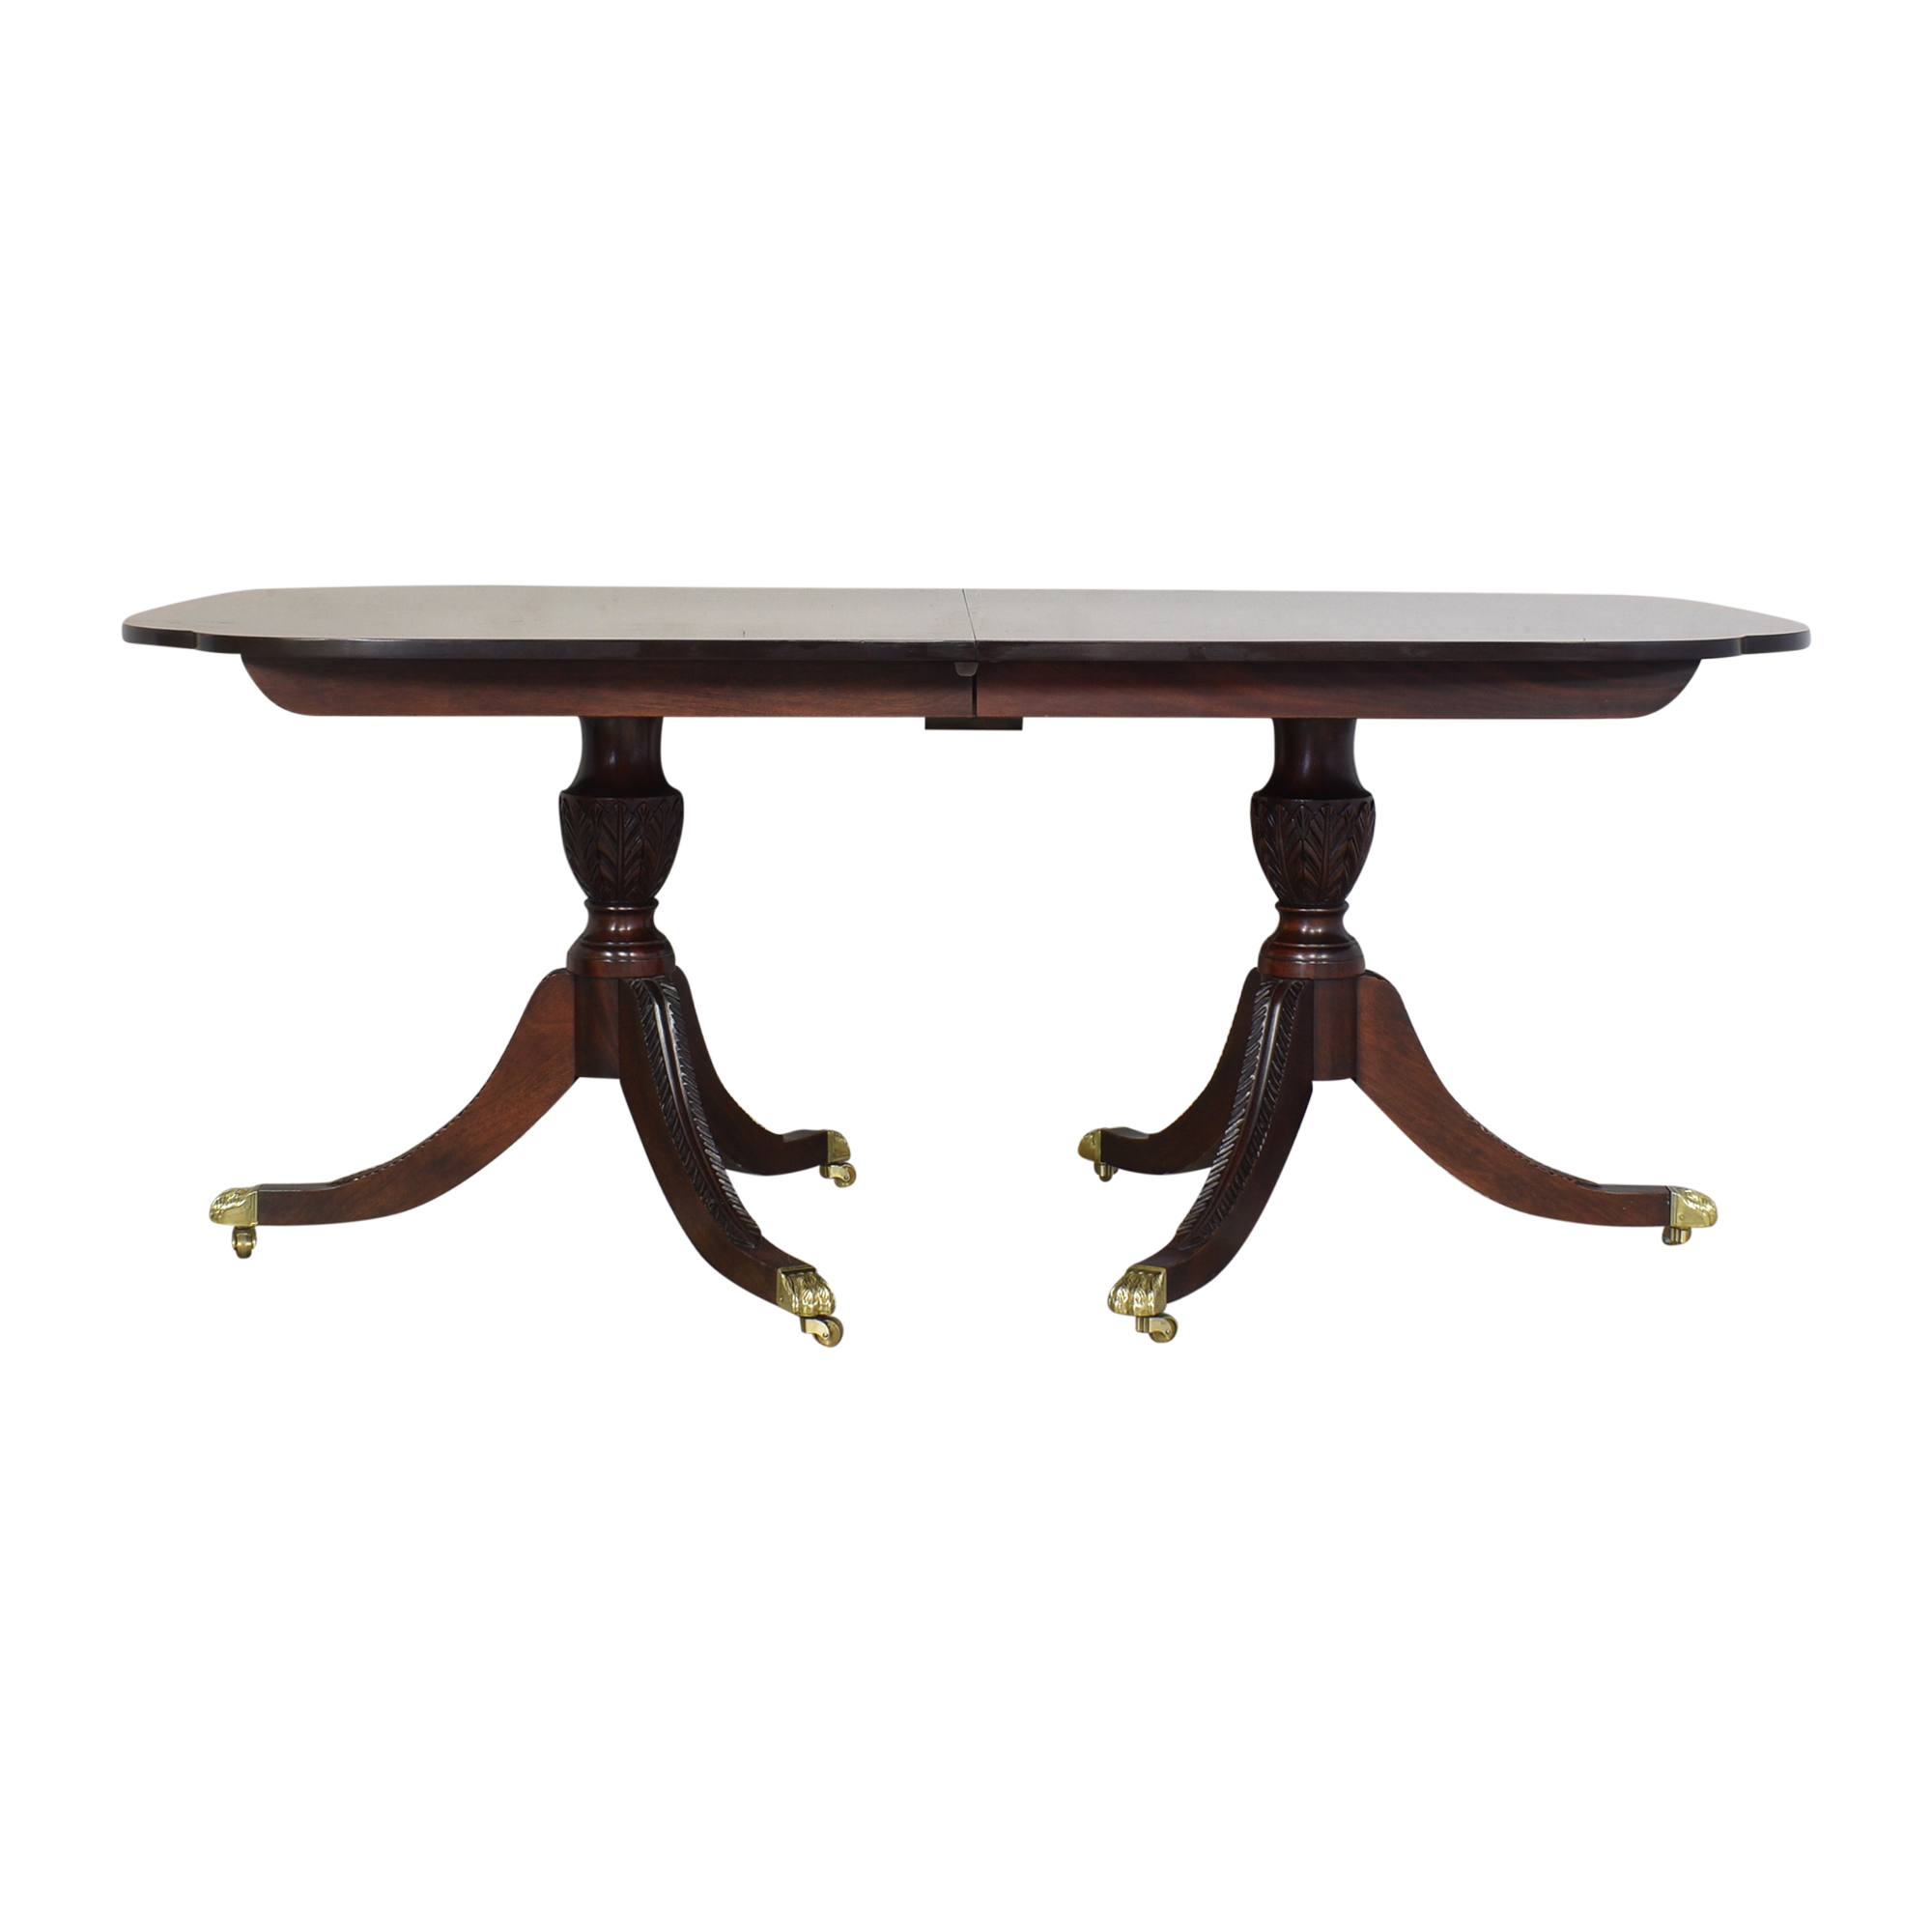 Stickley Furniture Stickley Furniture Double Pedestal Extendable Dining Table pa